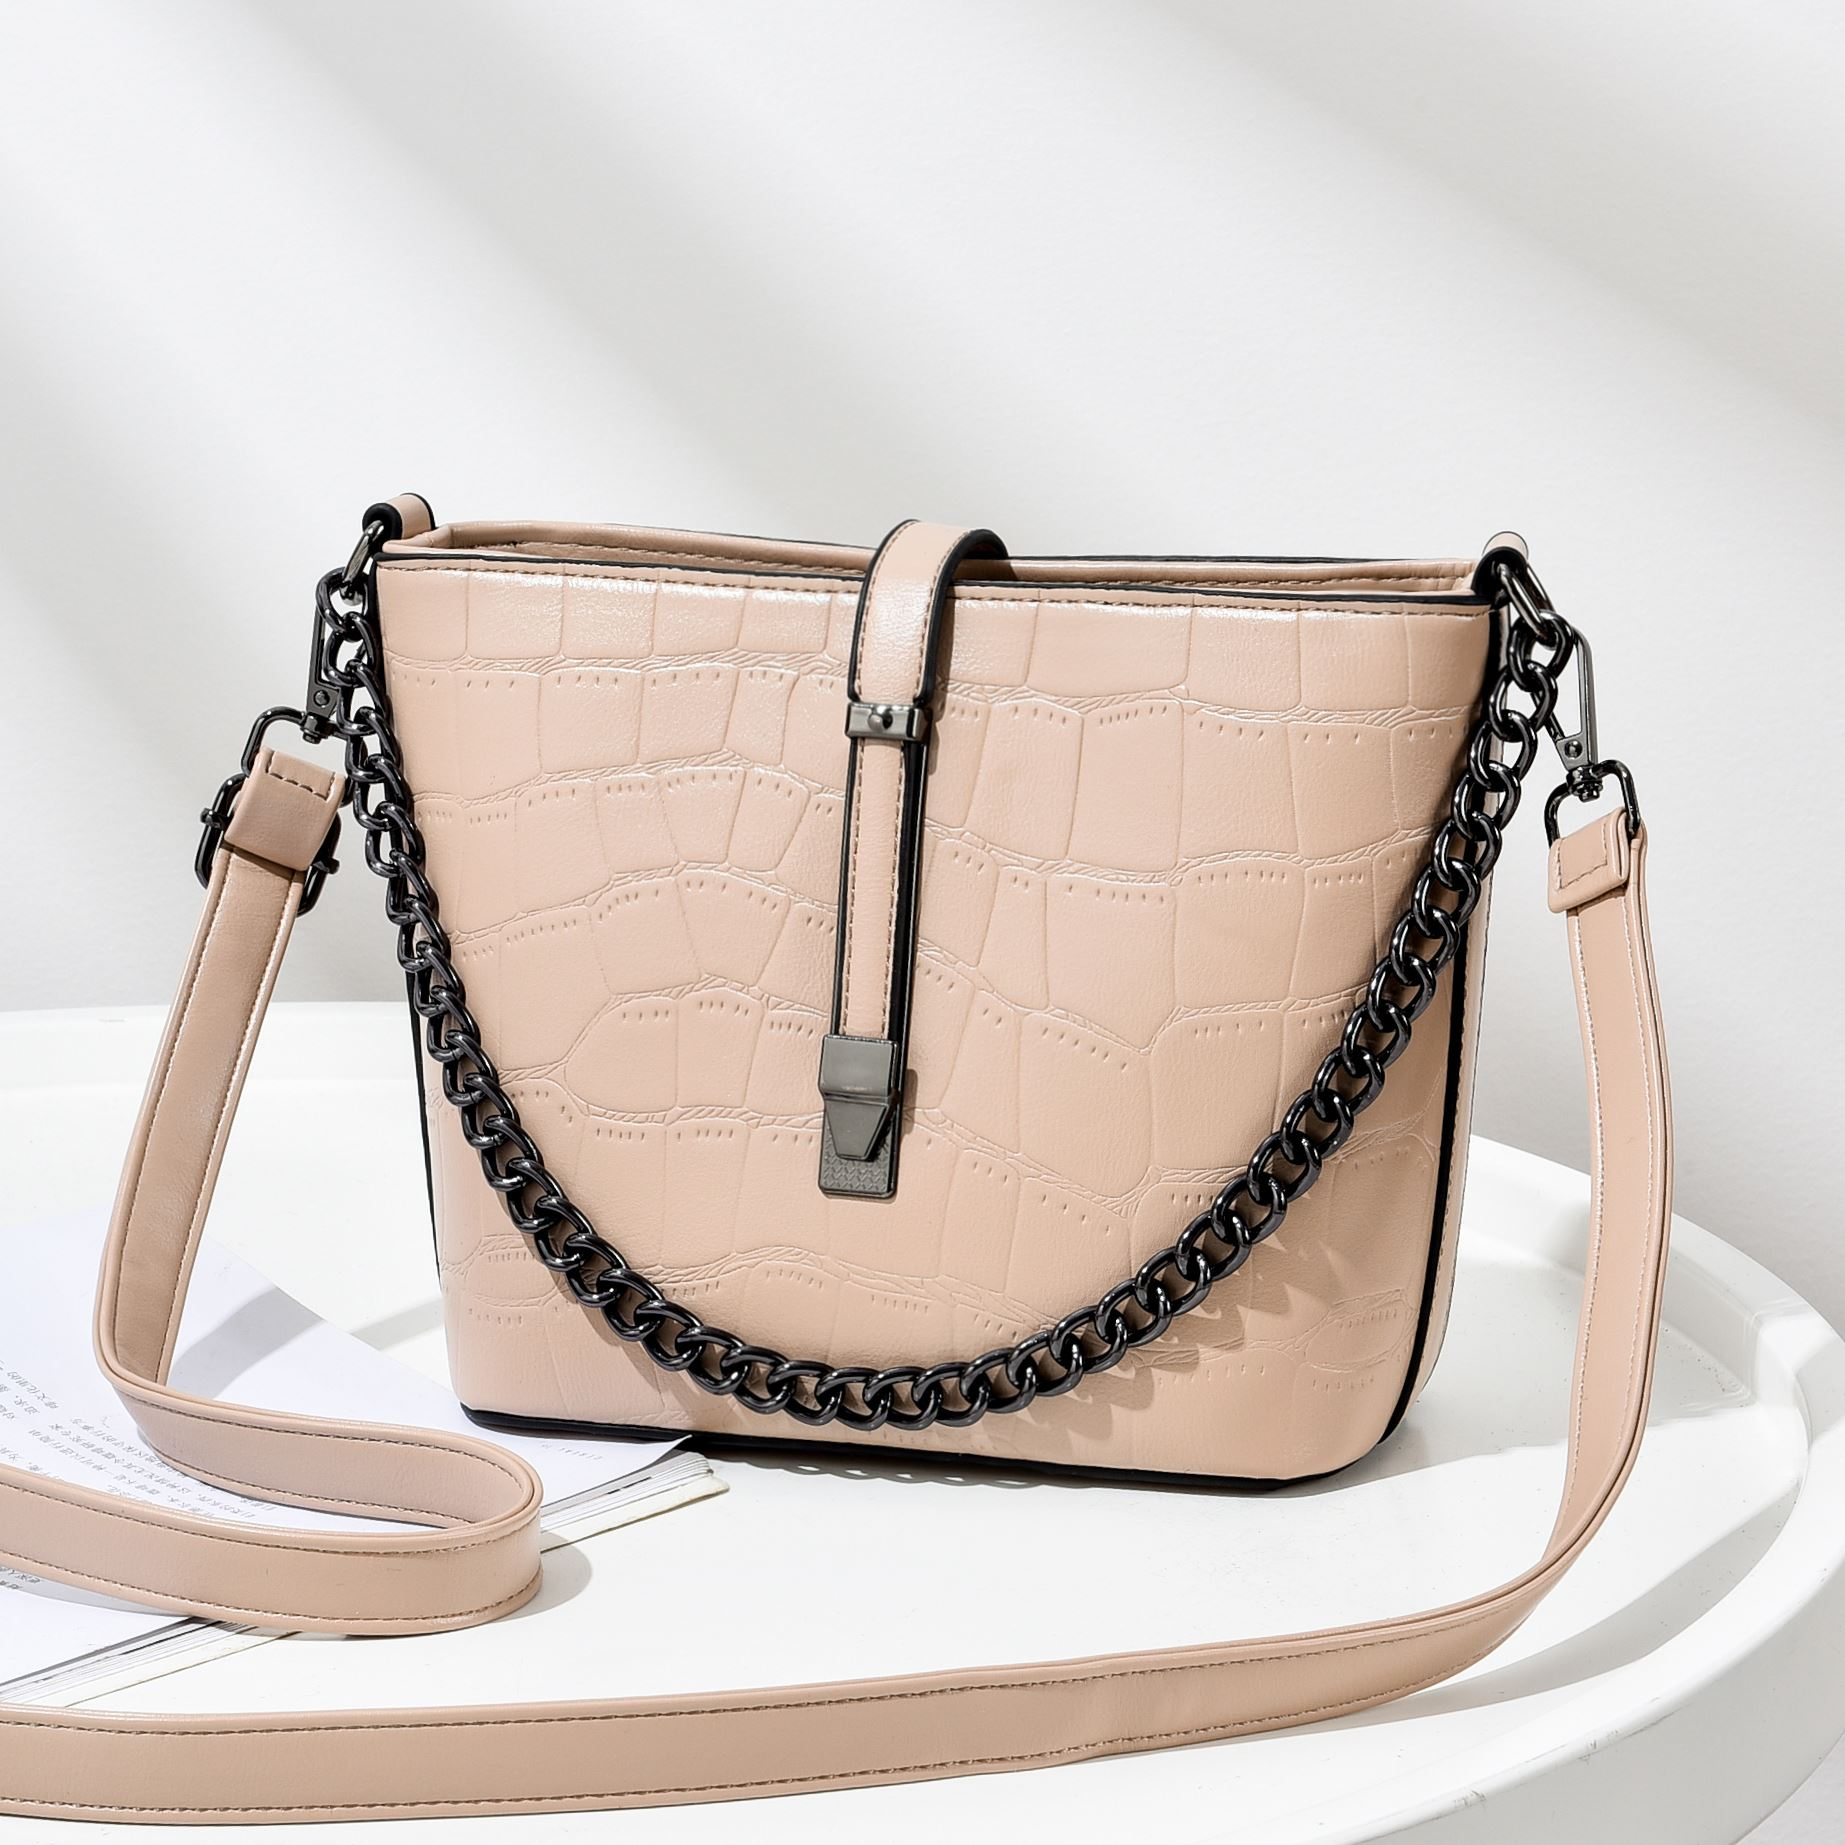 JT89971 IDR.176.000 MATERIAL PU SIZE L20XH18XW9CM WEIGHT 600GR COLOR KHAKI